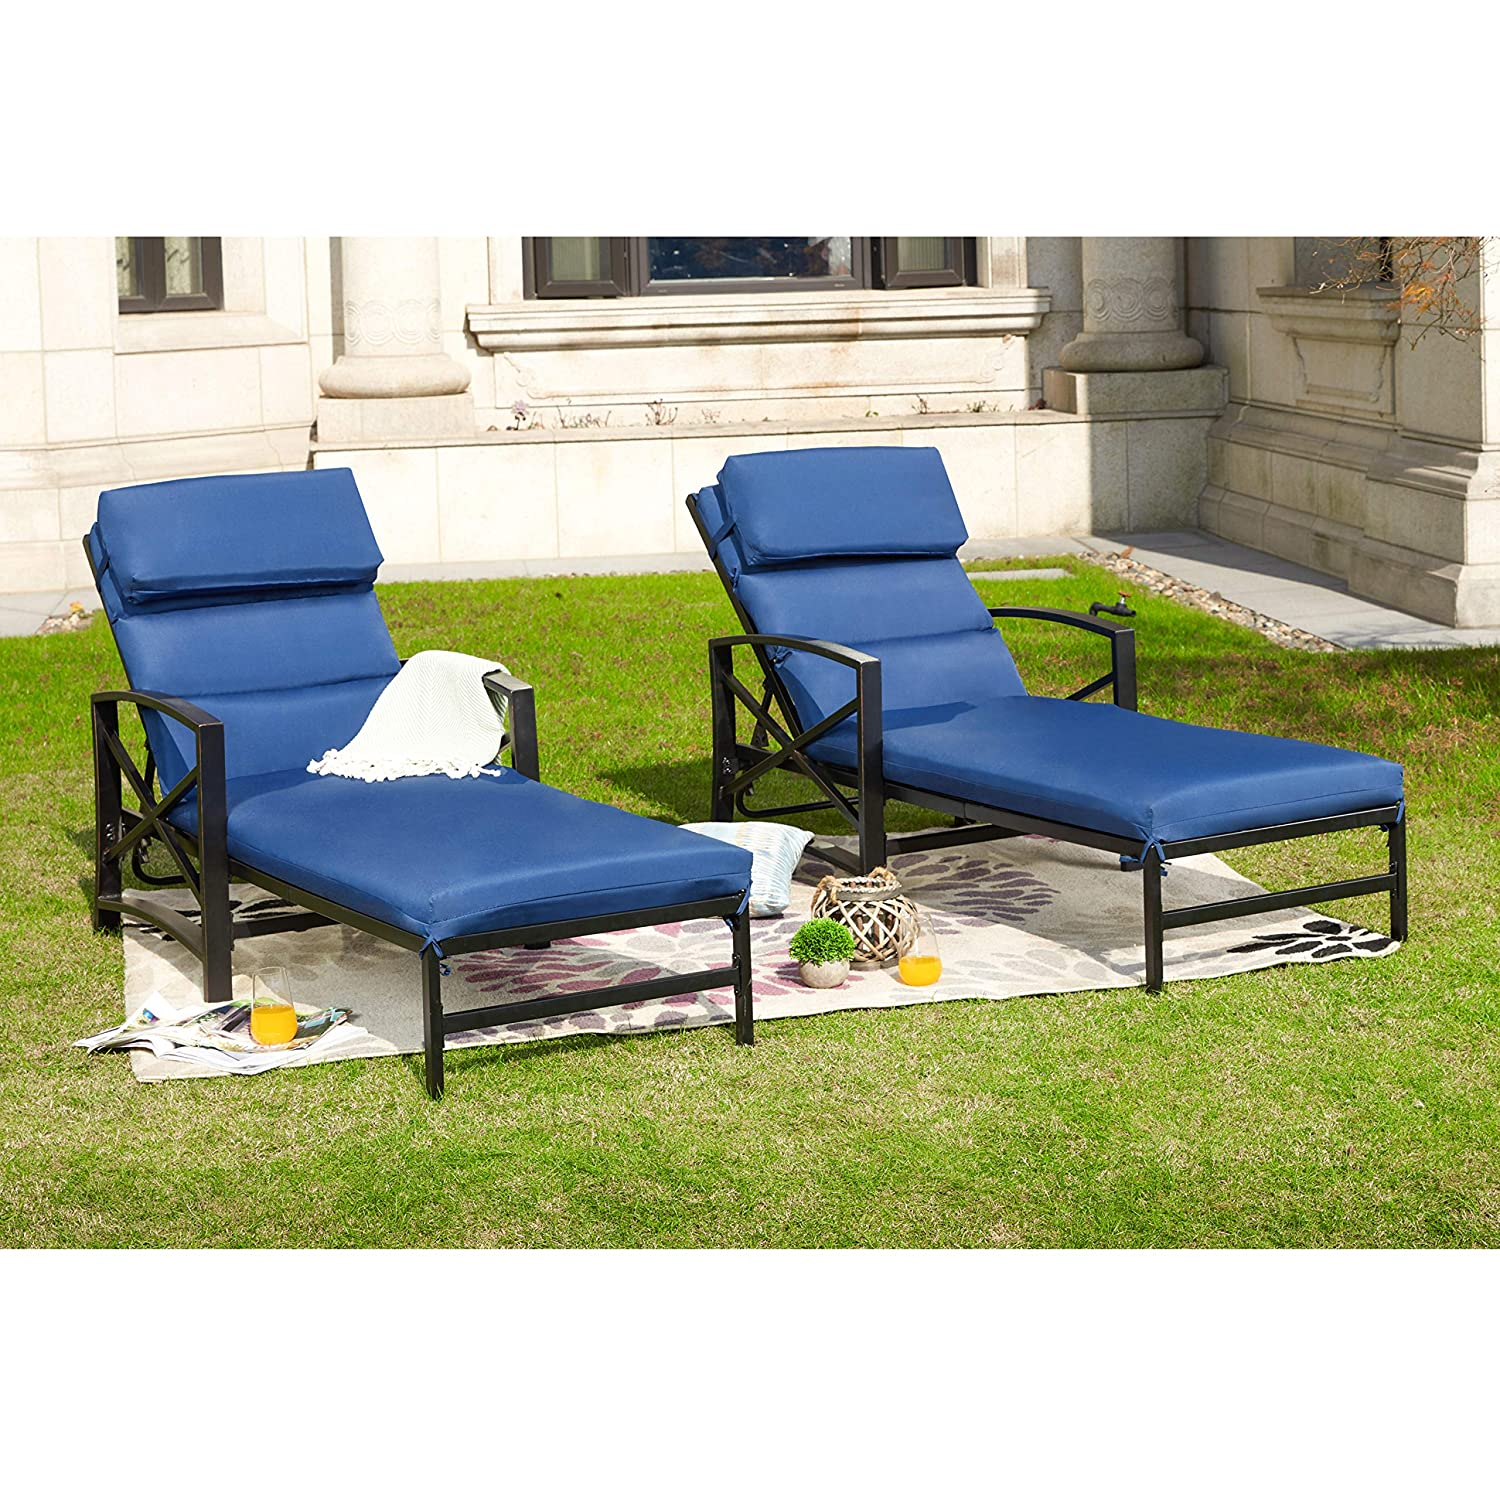 Incredible Outdoor Patio Chaise Lounge Chair With Adjustable Backrest And And Arms Metal Lounger Furniture All Weather 2 Pc Blue Gmtry Best Dining Table And Chair Ideas Images Gmtryco